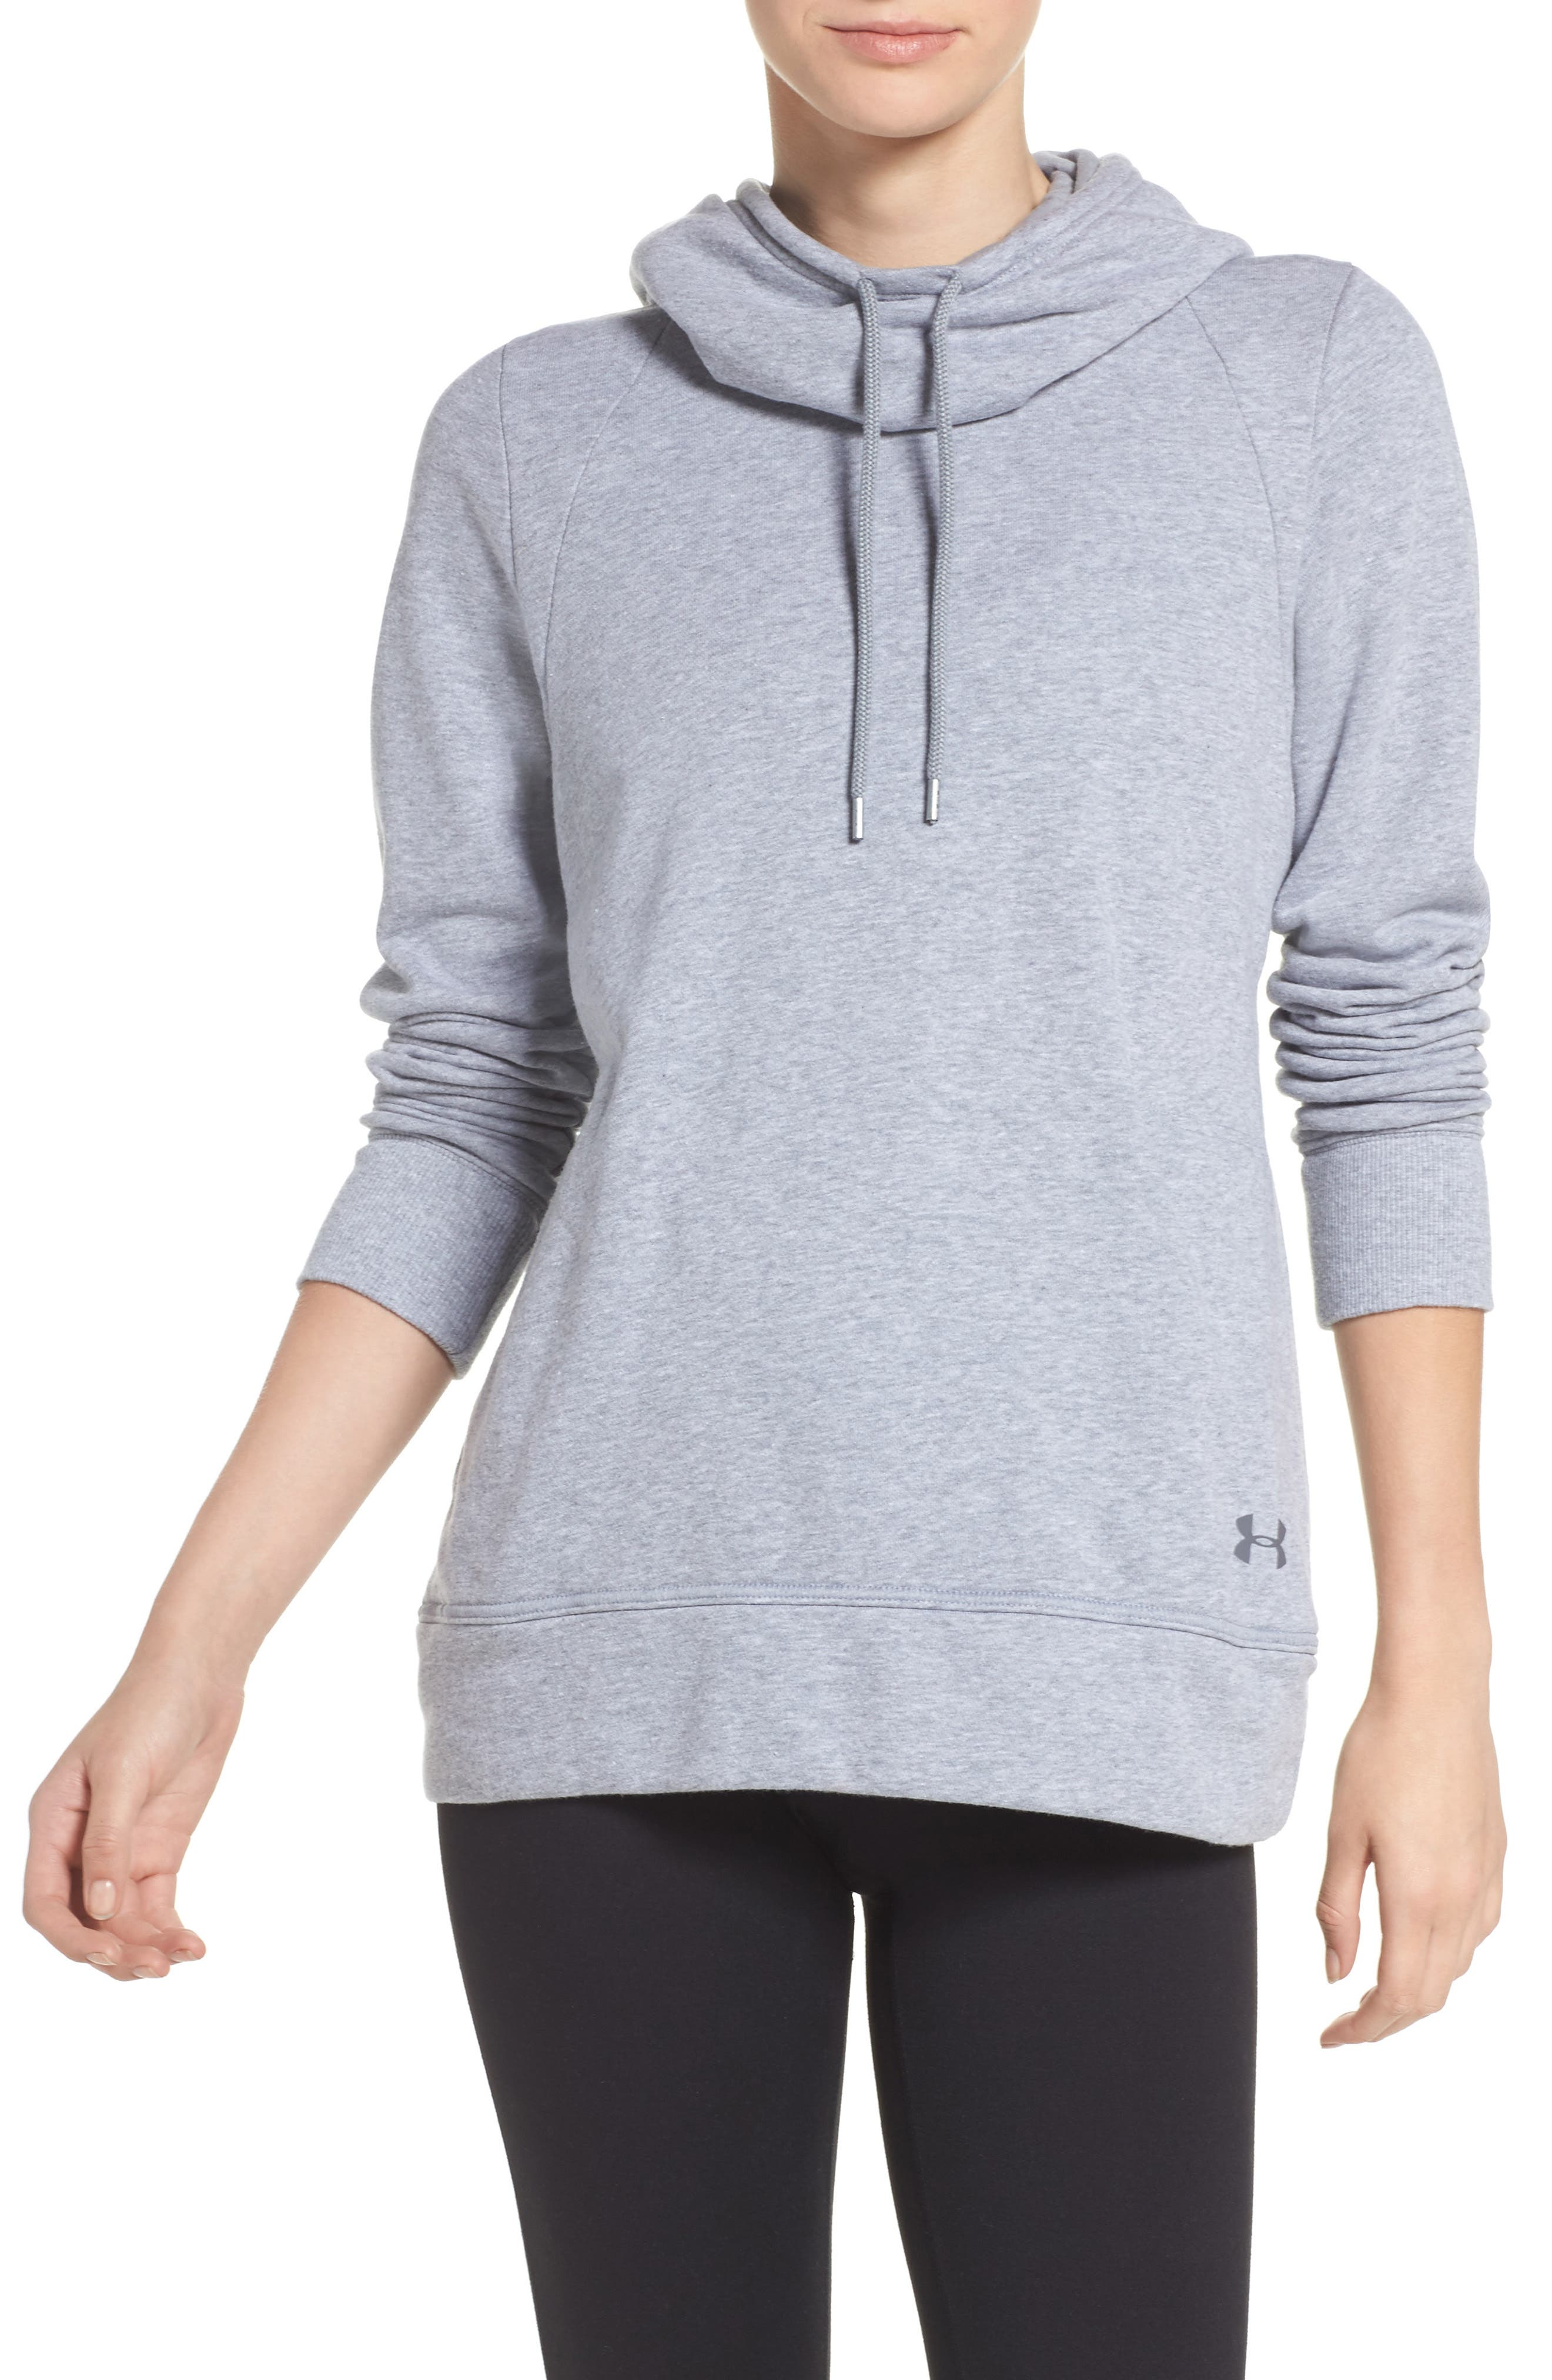 Cutout Back Hoodie,                             Main thumbnail 1, color,                             True Gray Heather/ Rhino Grey